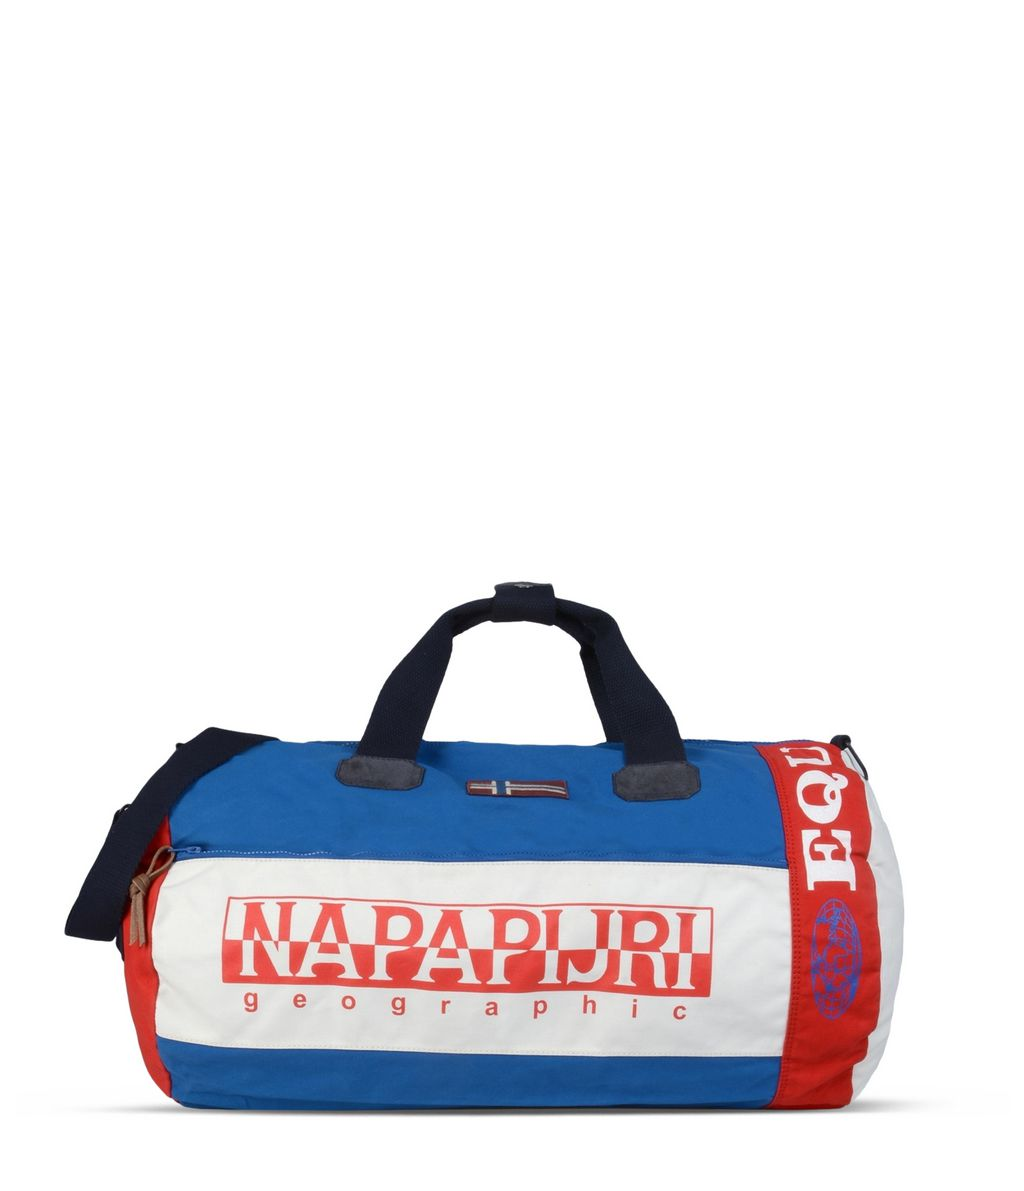 NAPAPIJRI SAROV  TRAVEL BAG,BRIGHT BLUE